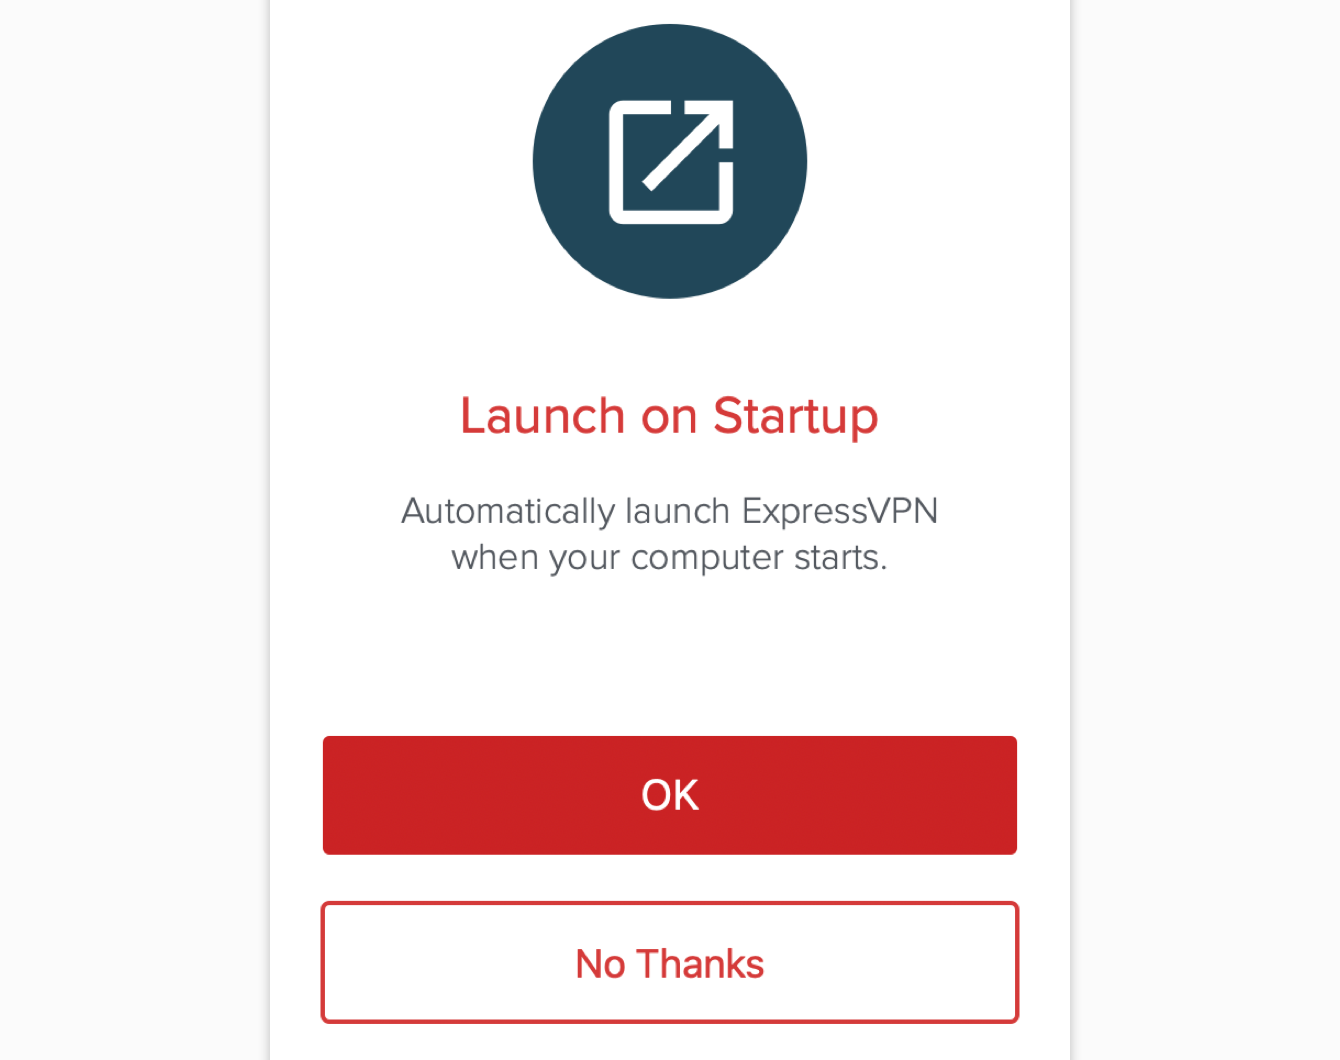 Select your preference for allowing ExpressVPN to launch when your computer starts.